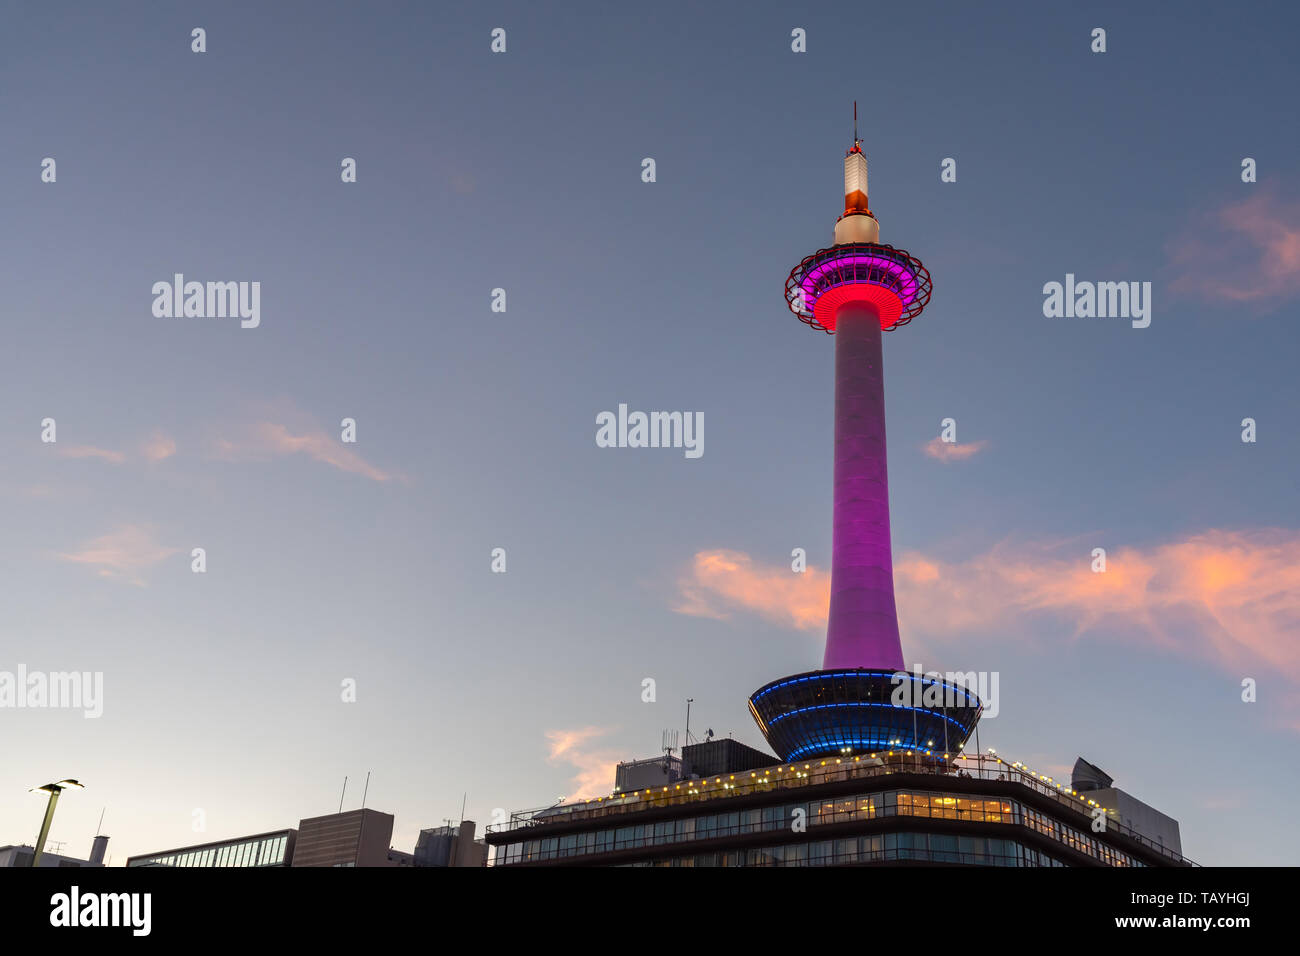 Colorful Kyoto Tower with Kyoto city skyline view at dusk in Japan Stock Photo